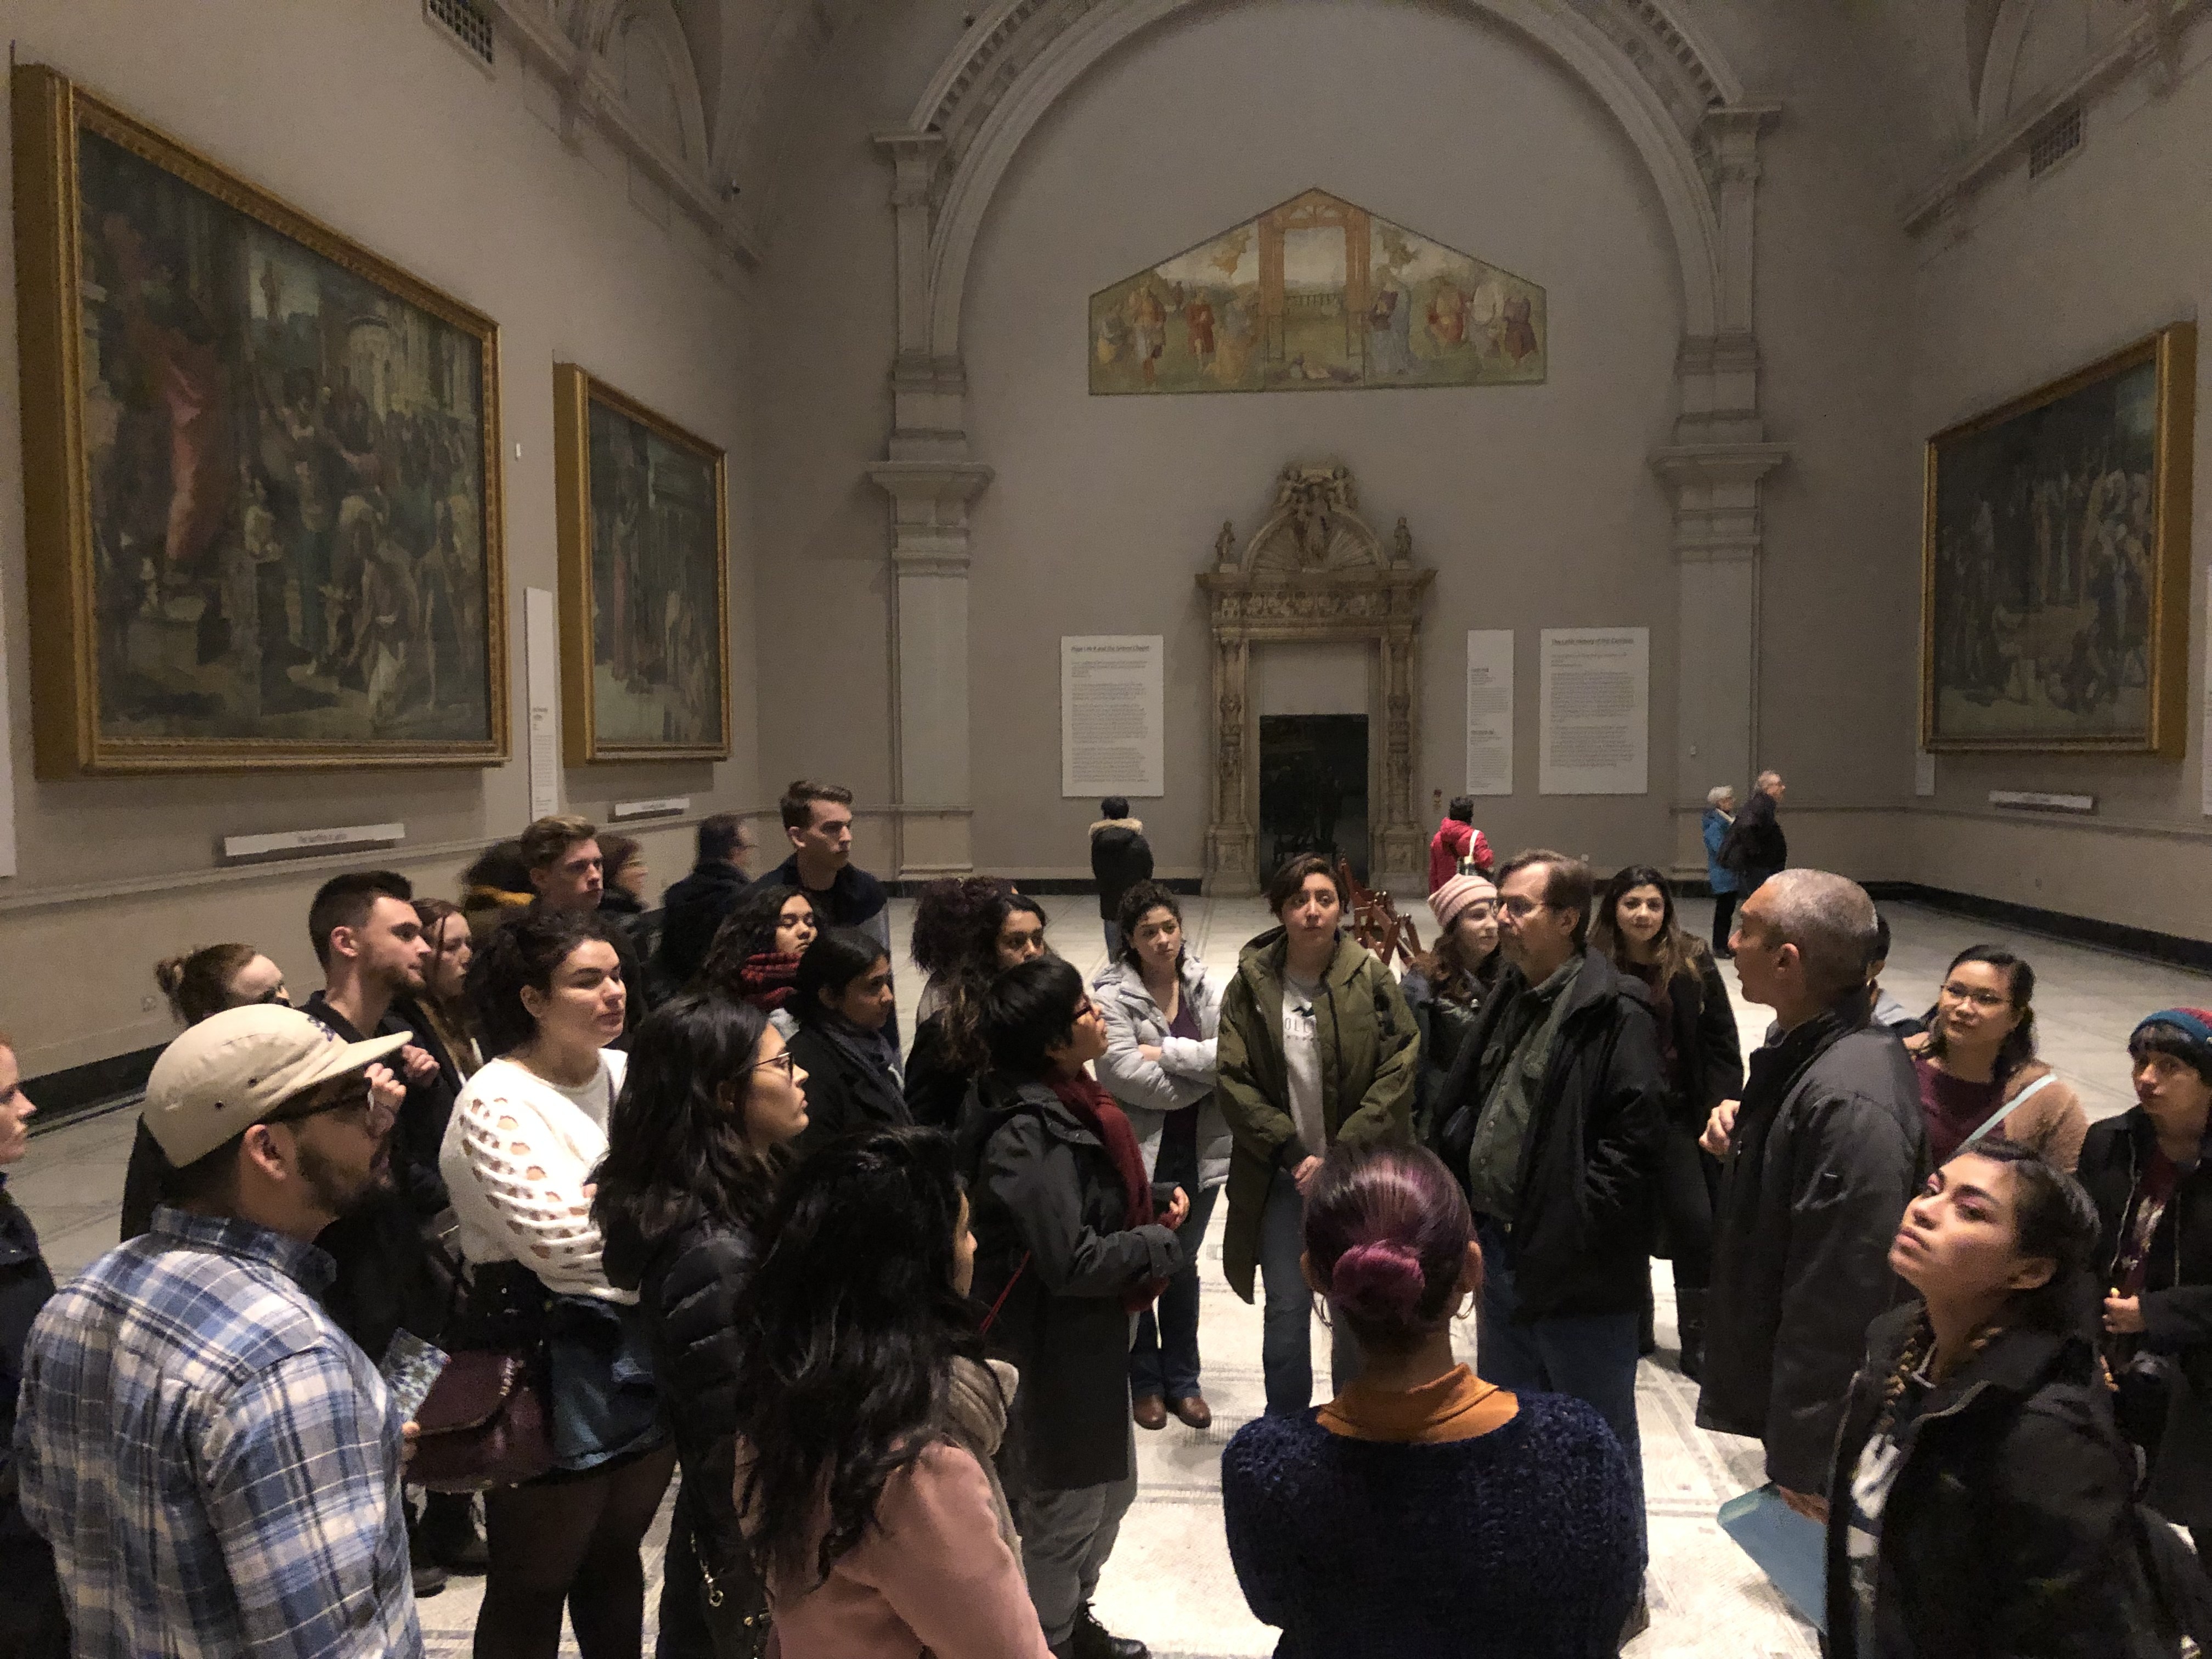 Professor Potter of the Art Department tells students about these paintings by Raphael at the Victoria and Albert Museum in London.